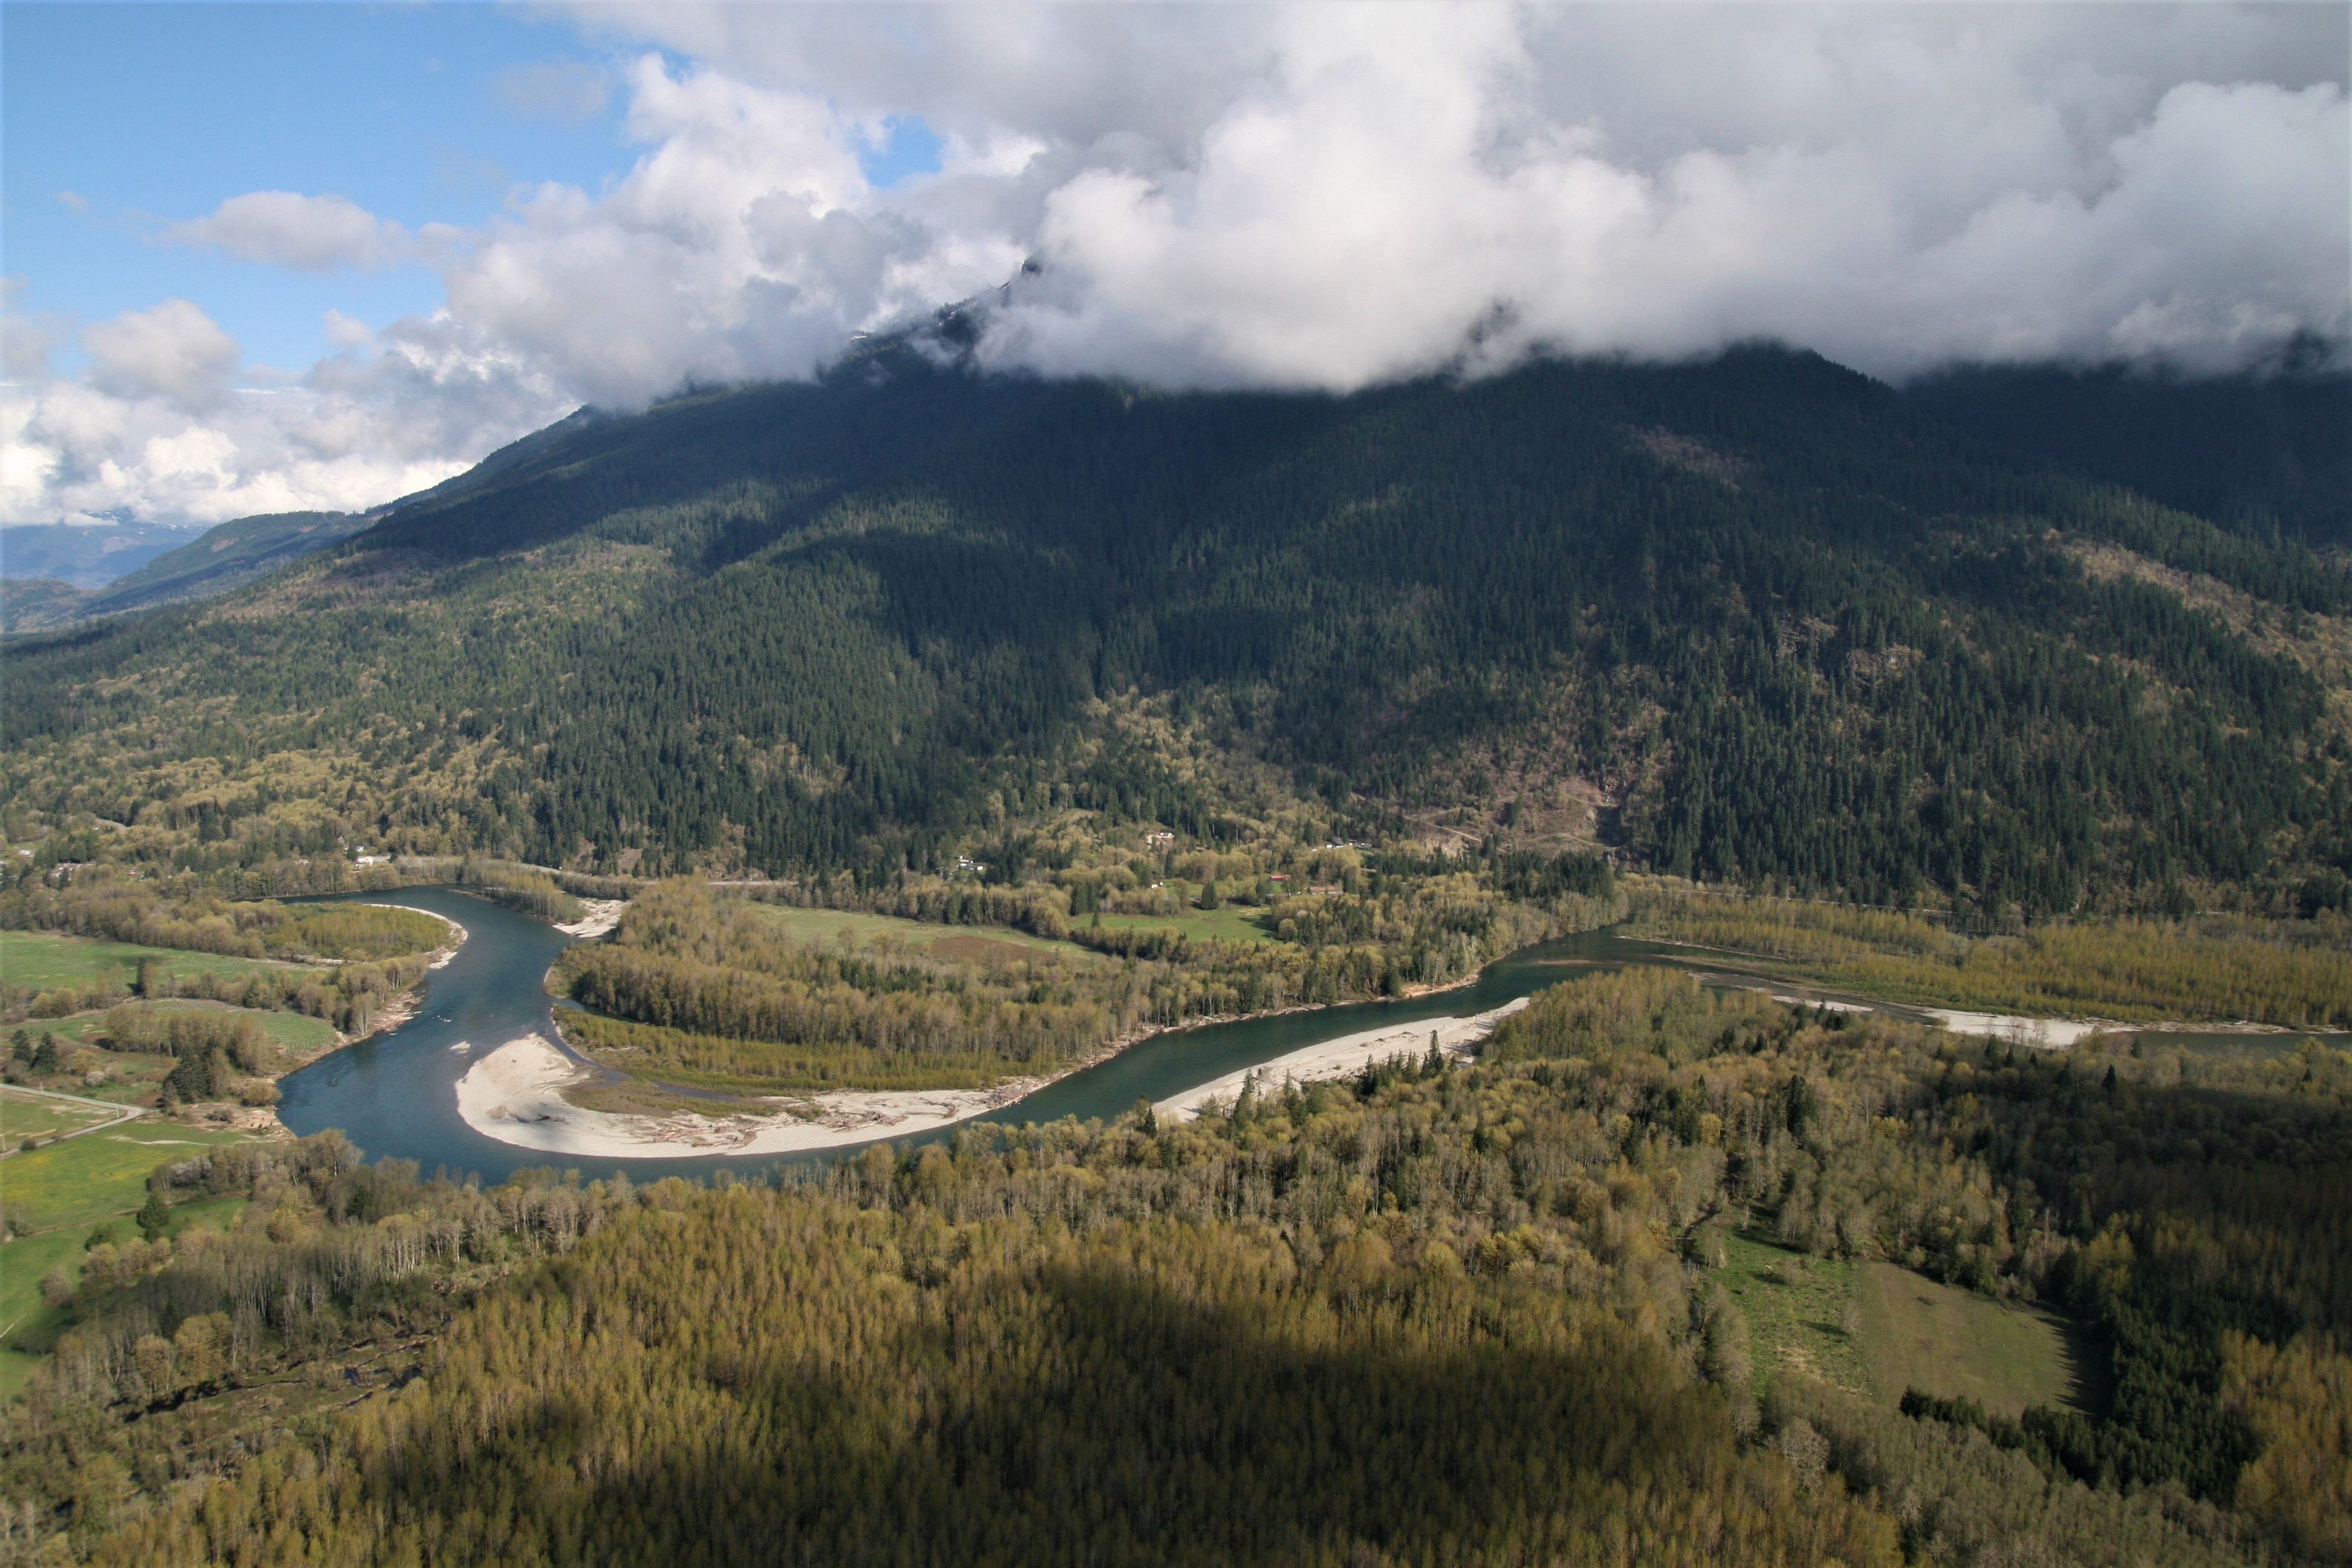 View from Sauk Mountain looking south over the Skagit River. Aerial photography by Andy Cline.